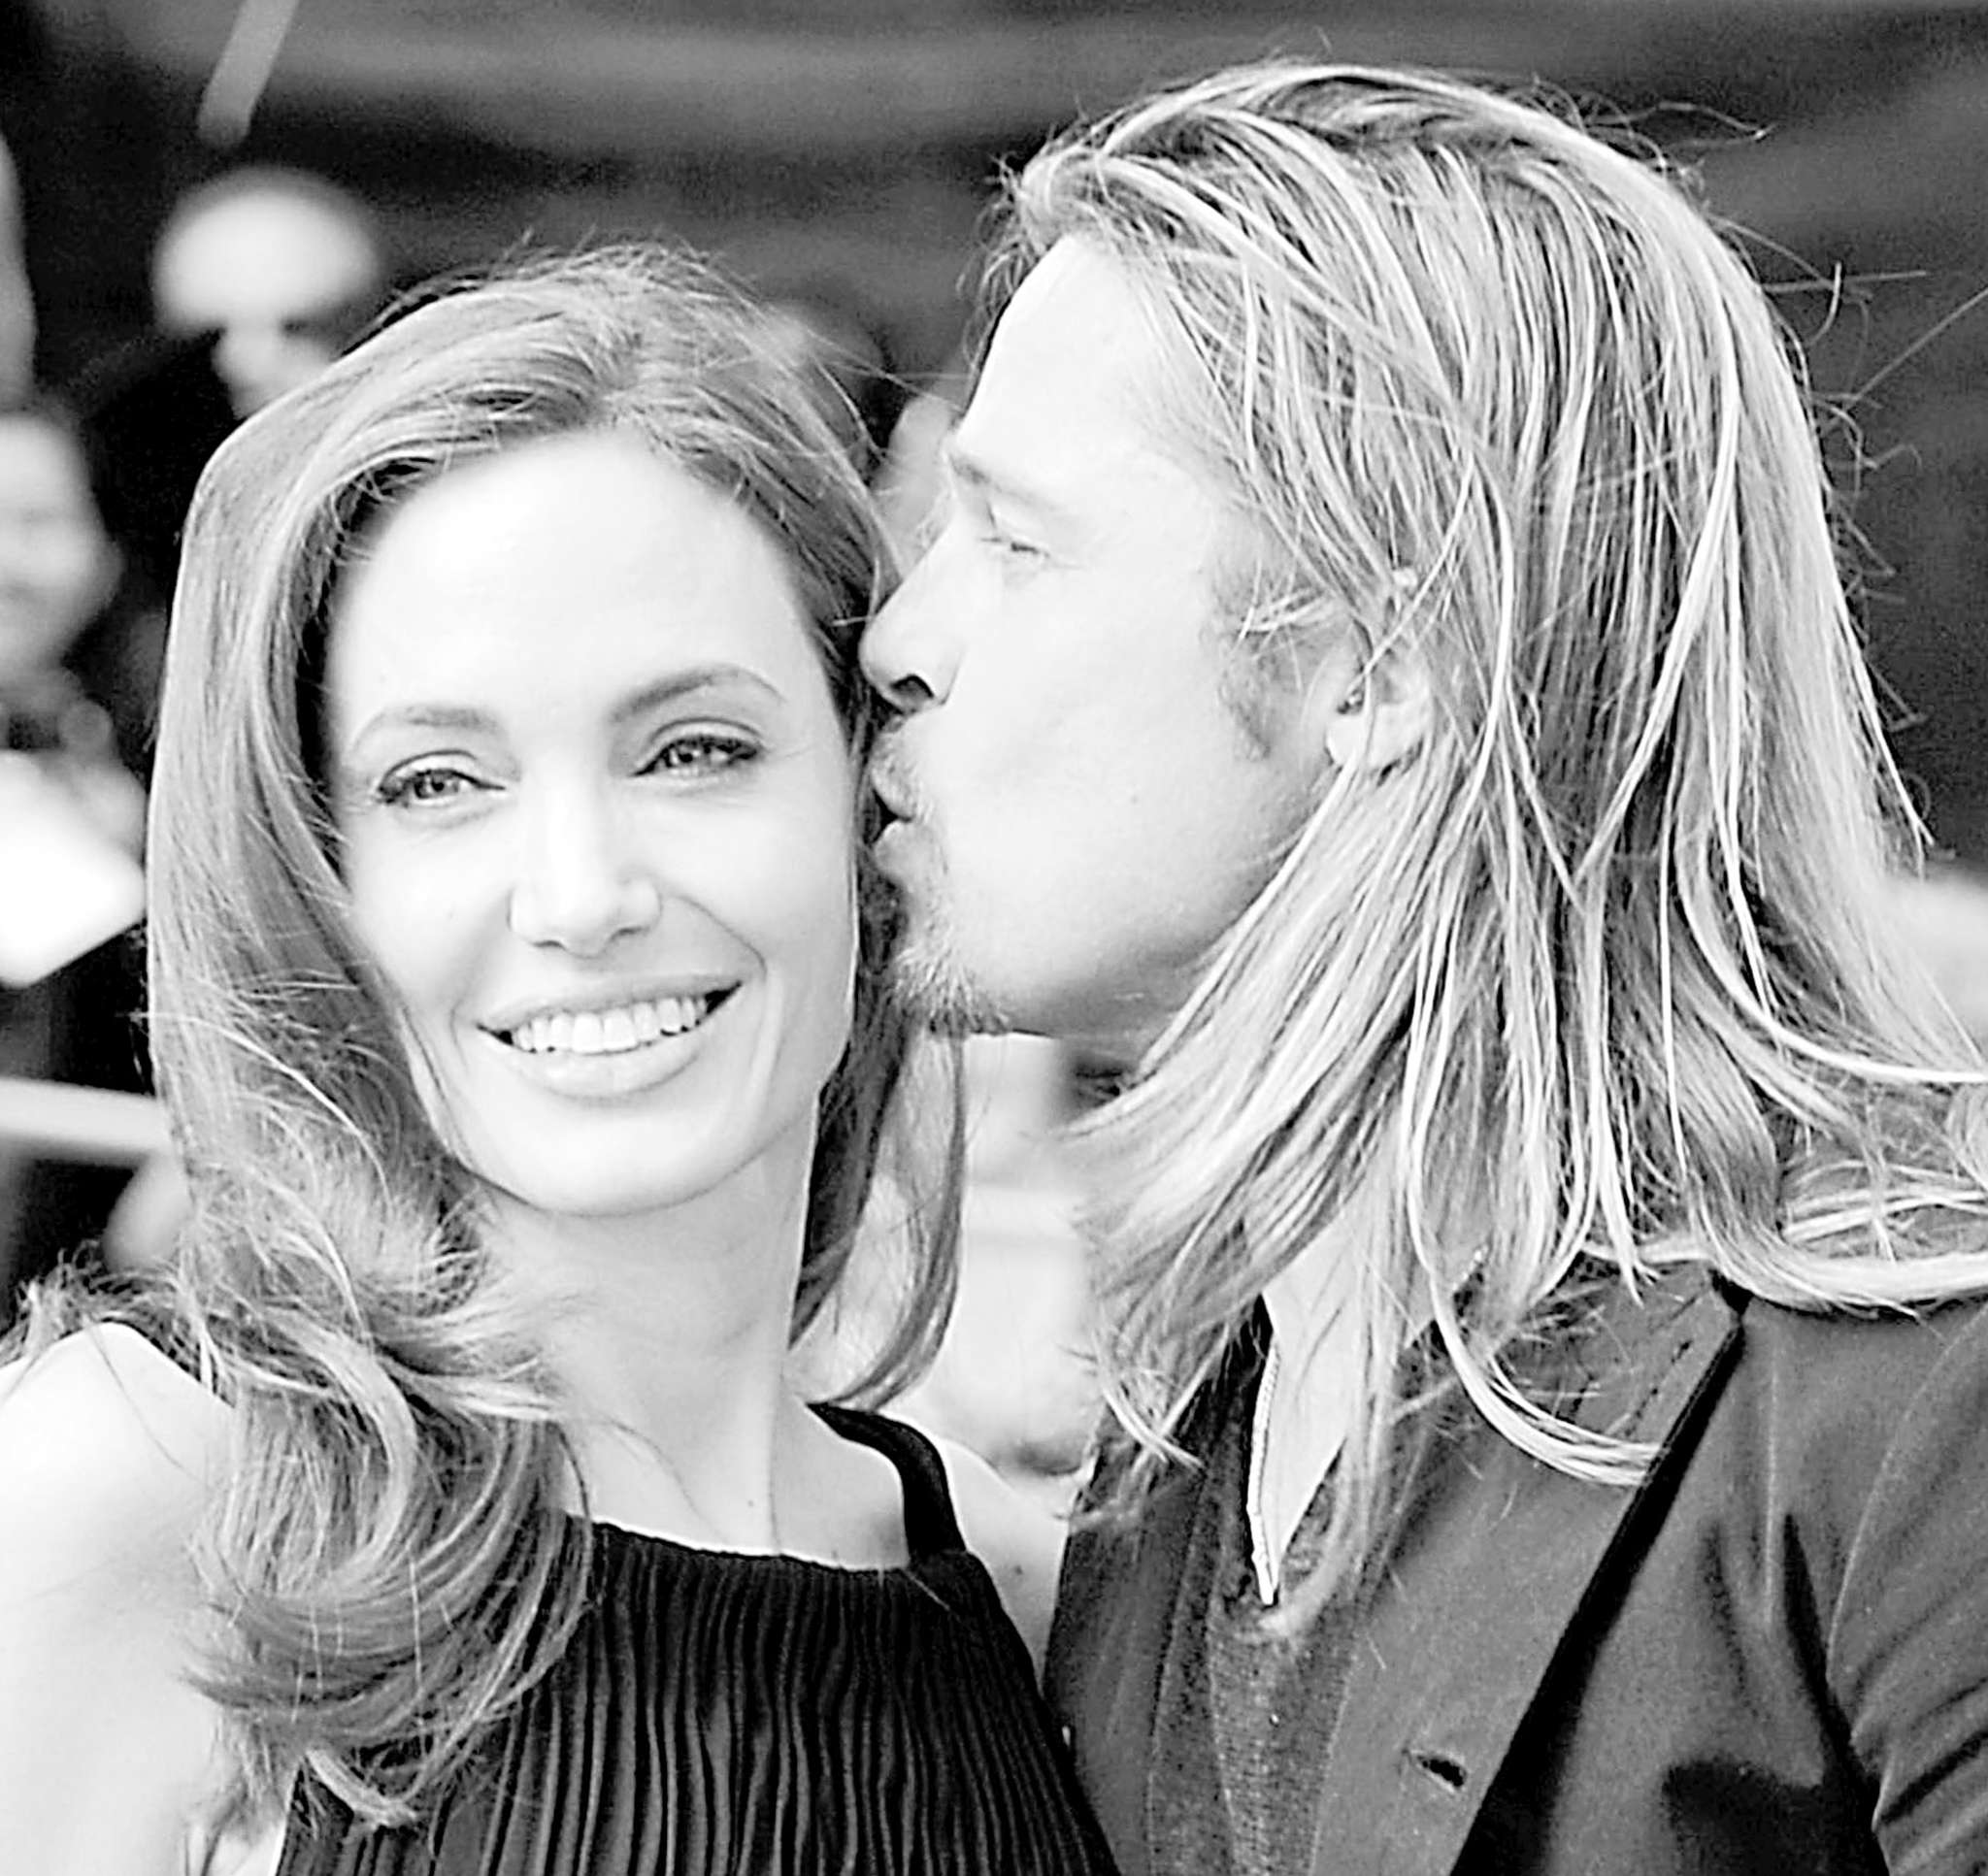 Angelina and Brad at the premiere of World War Z in 2013, in much happier times. TRIBUNE NEWS SERVICE